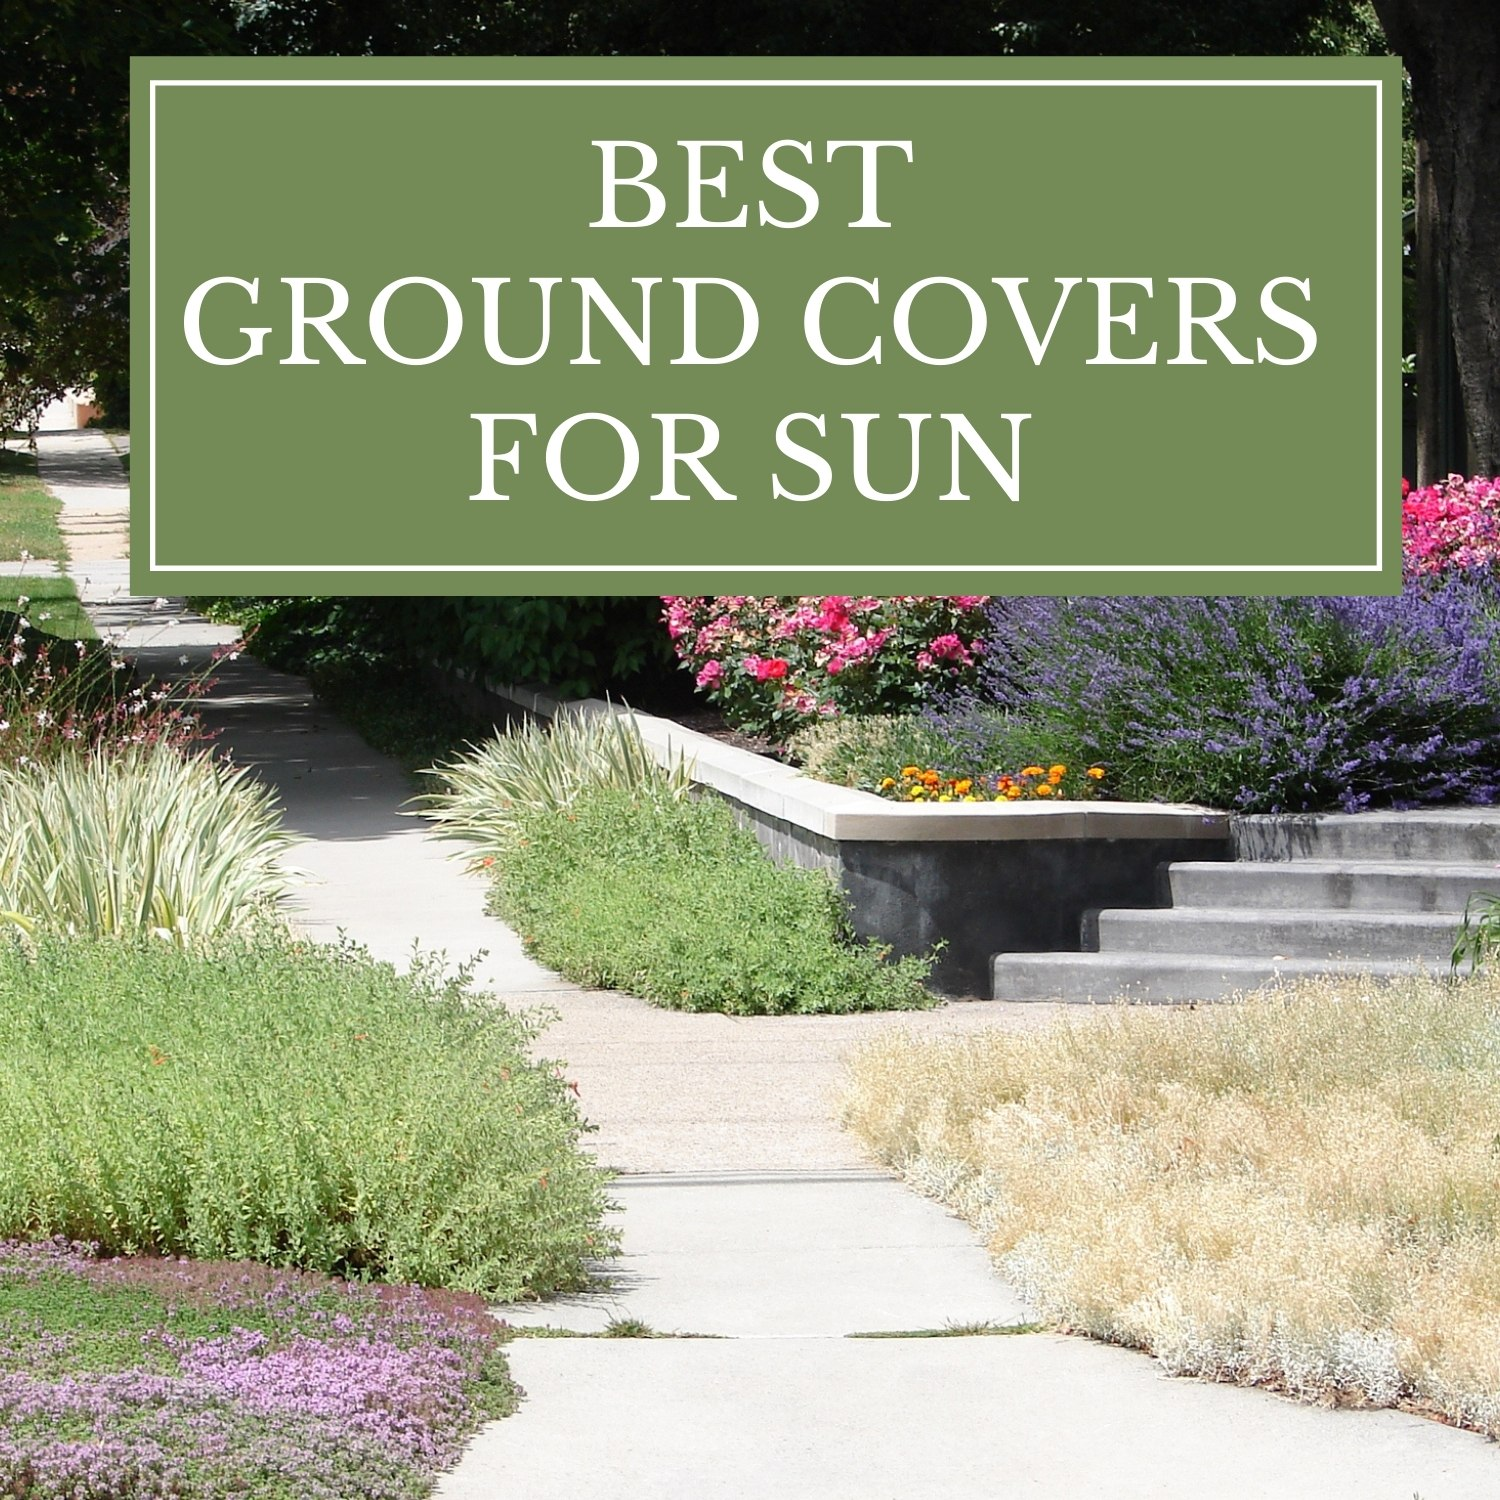 Best Groundcovers for Sun